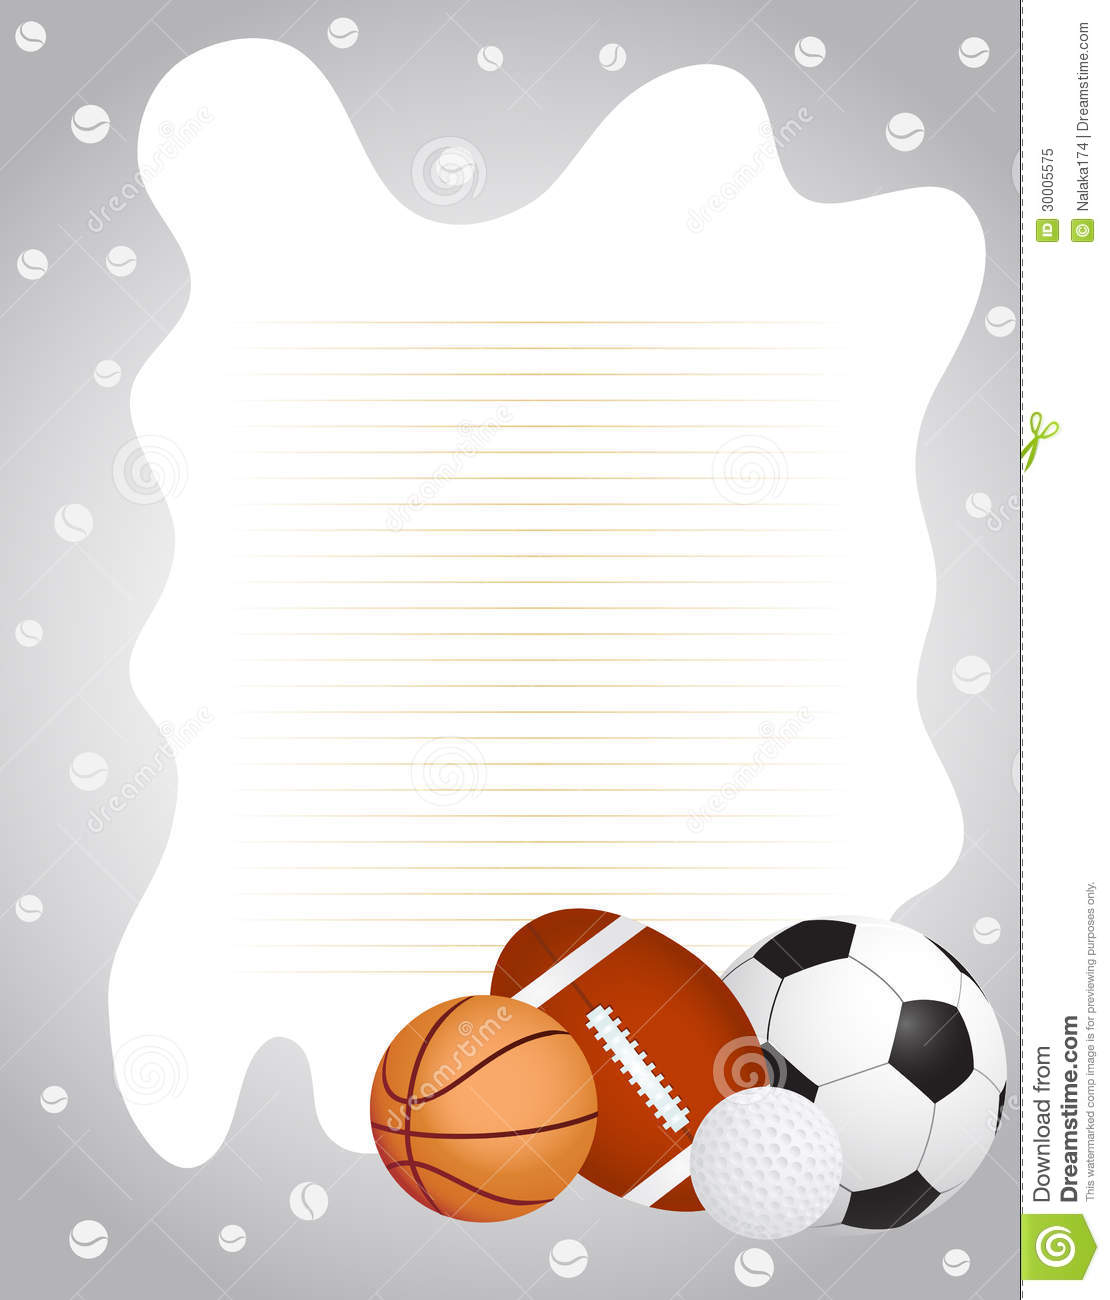 royalty free stock photo sports frame image 30005575 basketball borders and frames